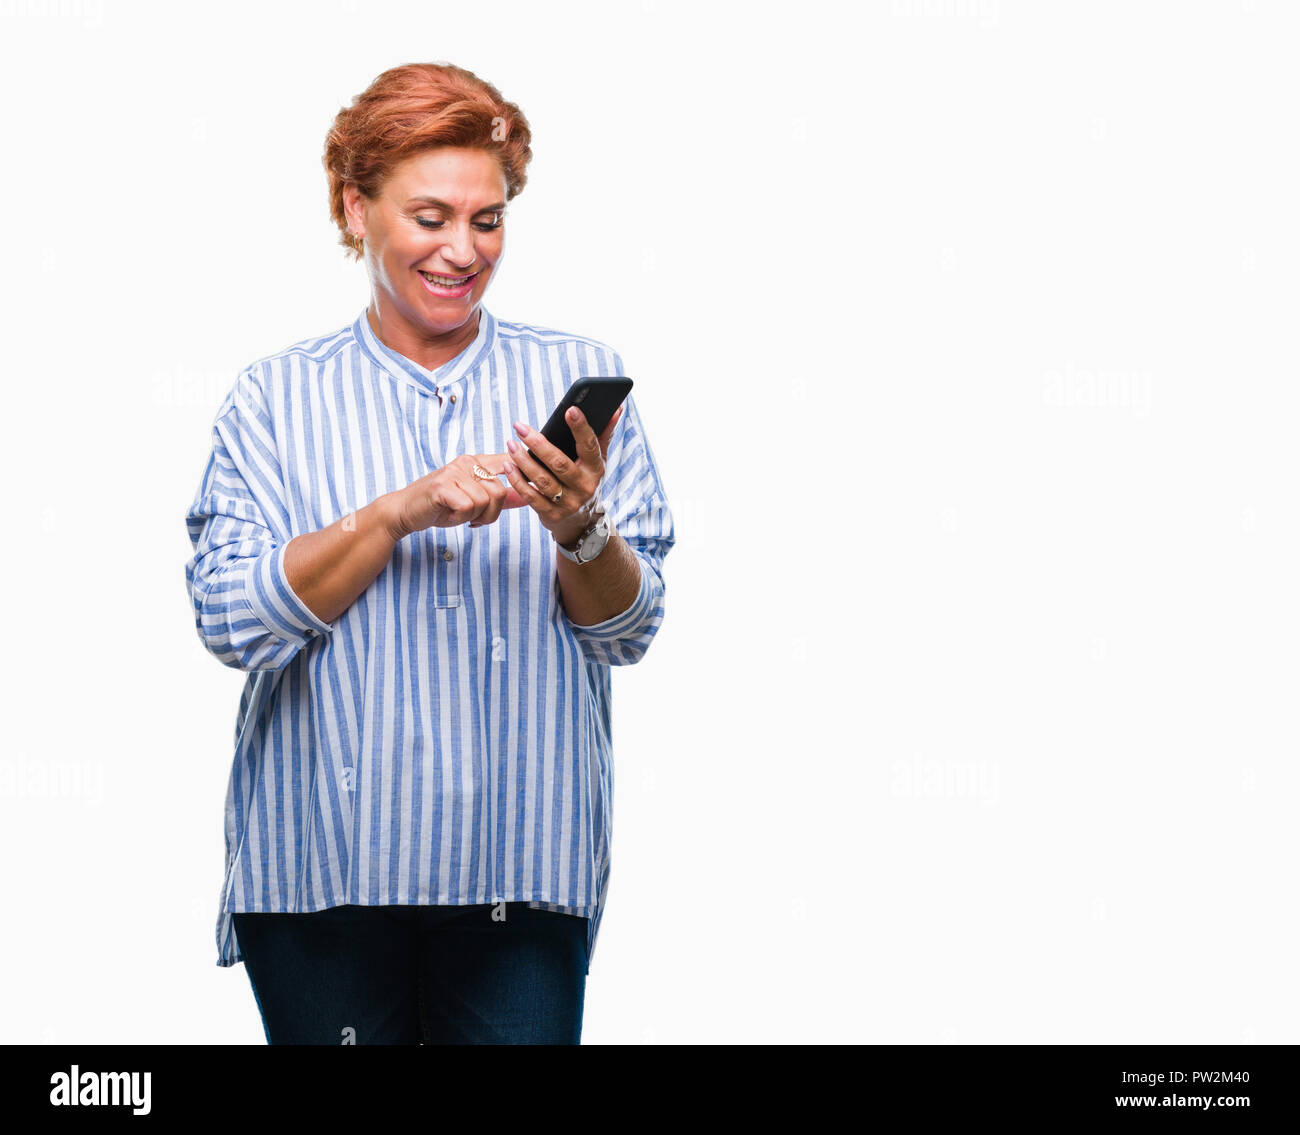 Atrractive senior caucasian redhead woman texting using smartphone over  isolated background with a happy face standing